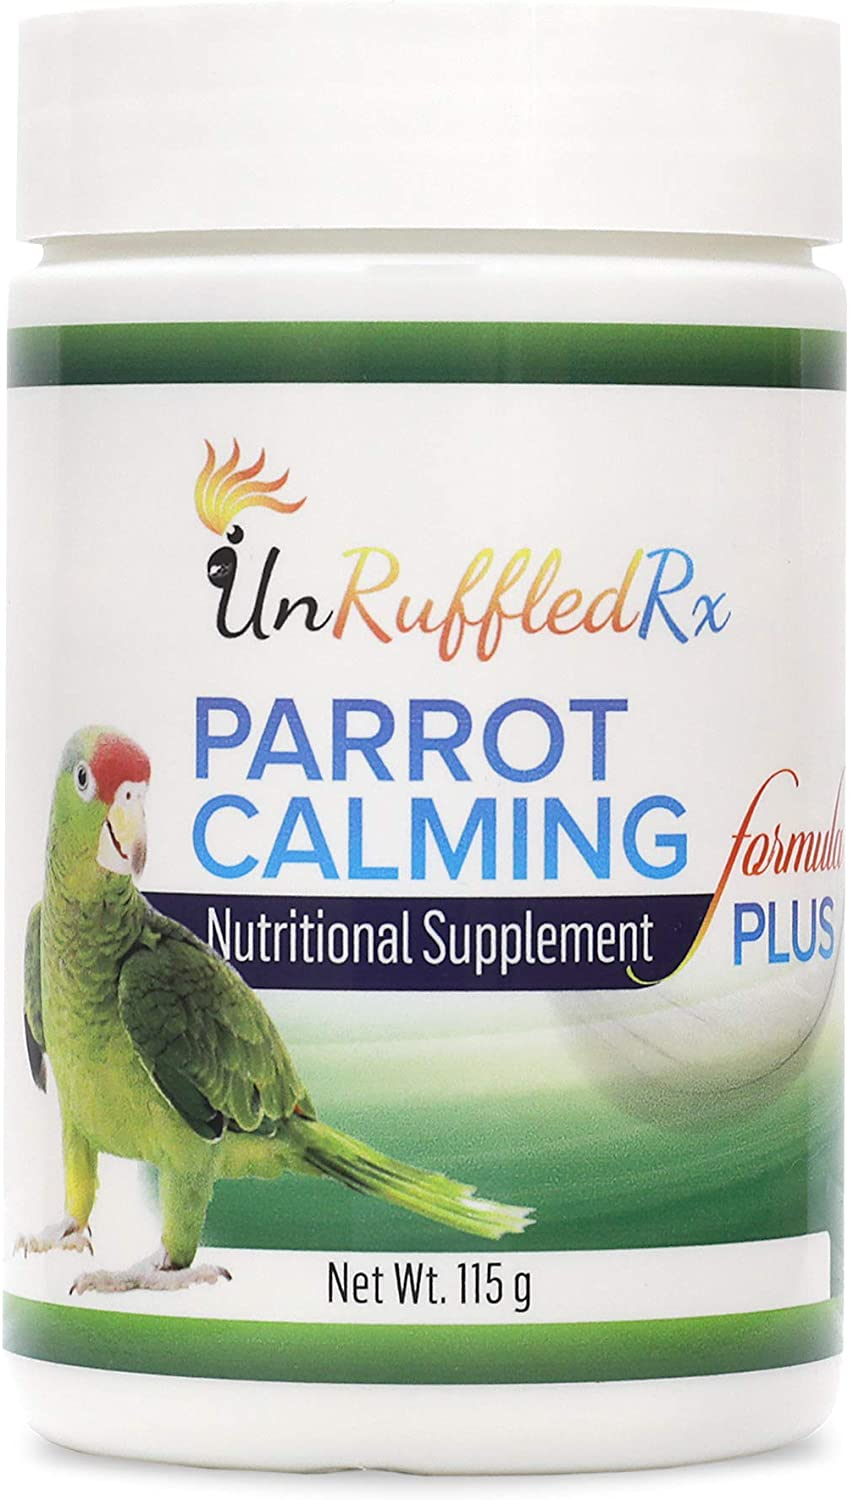 UnRuffledRx Parrot Calming Supplement - Bird Supplements for Stress Relief - L-Theanine and GABA Calm Avian Formula for Conure, Cockatoo, and Parrotlet to Reduce Feather Plucking - 194 Doses